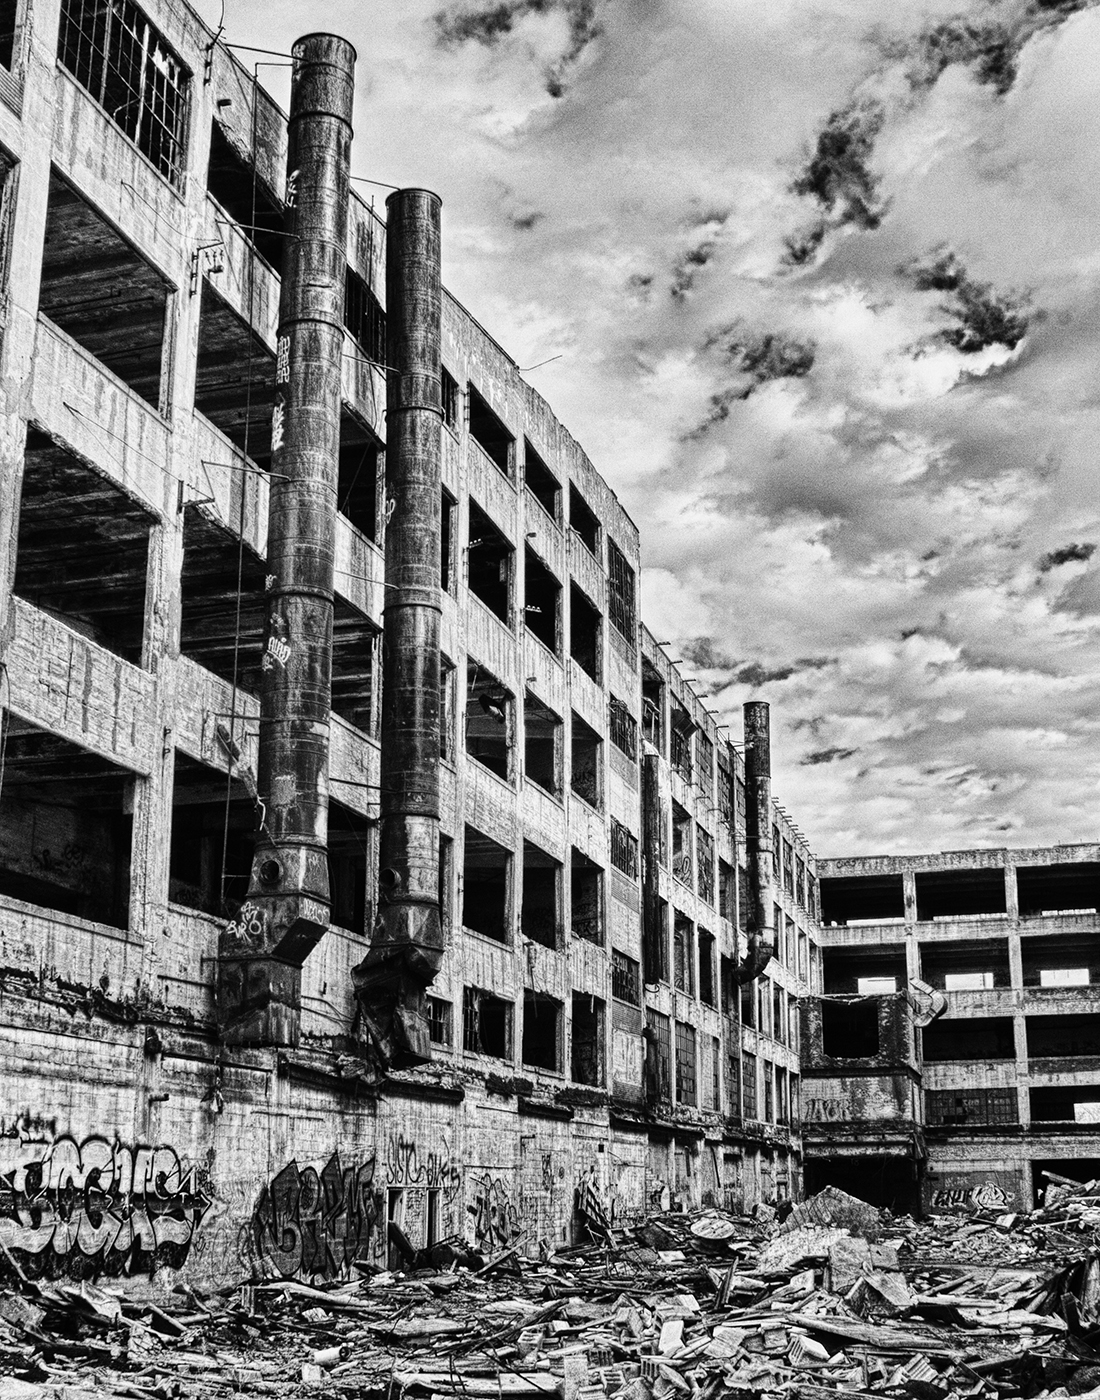 This is the outside of the Packard Plant in Detroit, MI. I made this image in February of 2012. This was when I was just starting out experimenting with HDR photography and I took the color HDR photograph to make it B&W. I will save my thoughts about HDR photography for another blog.